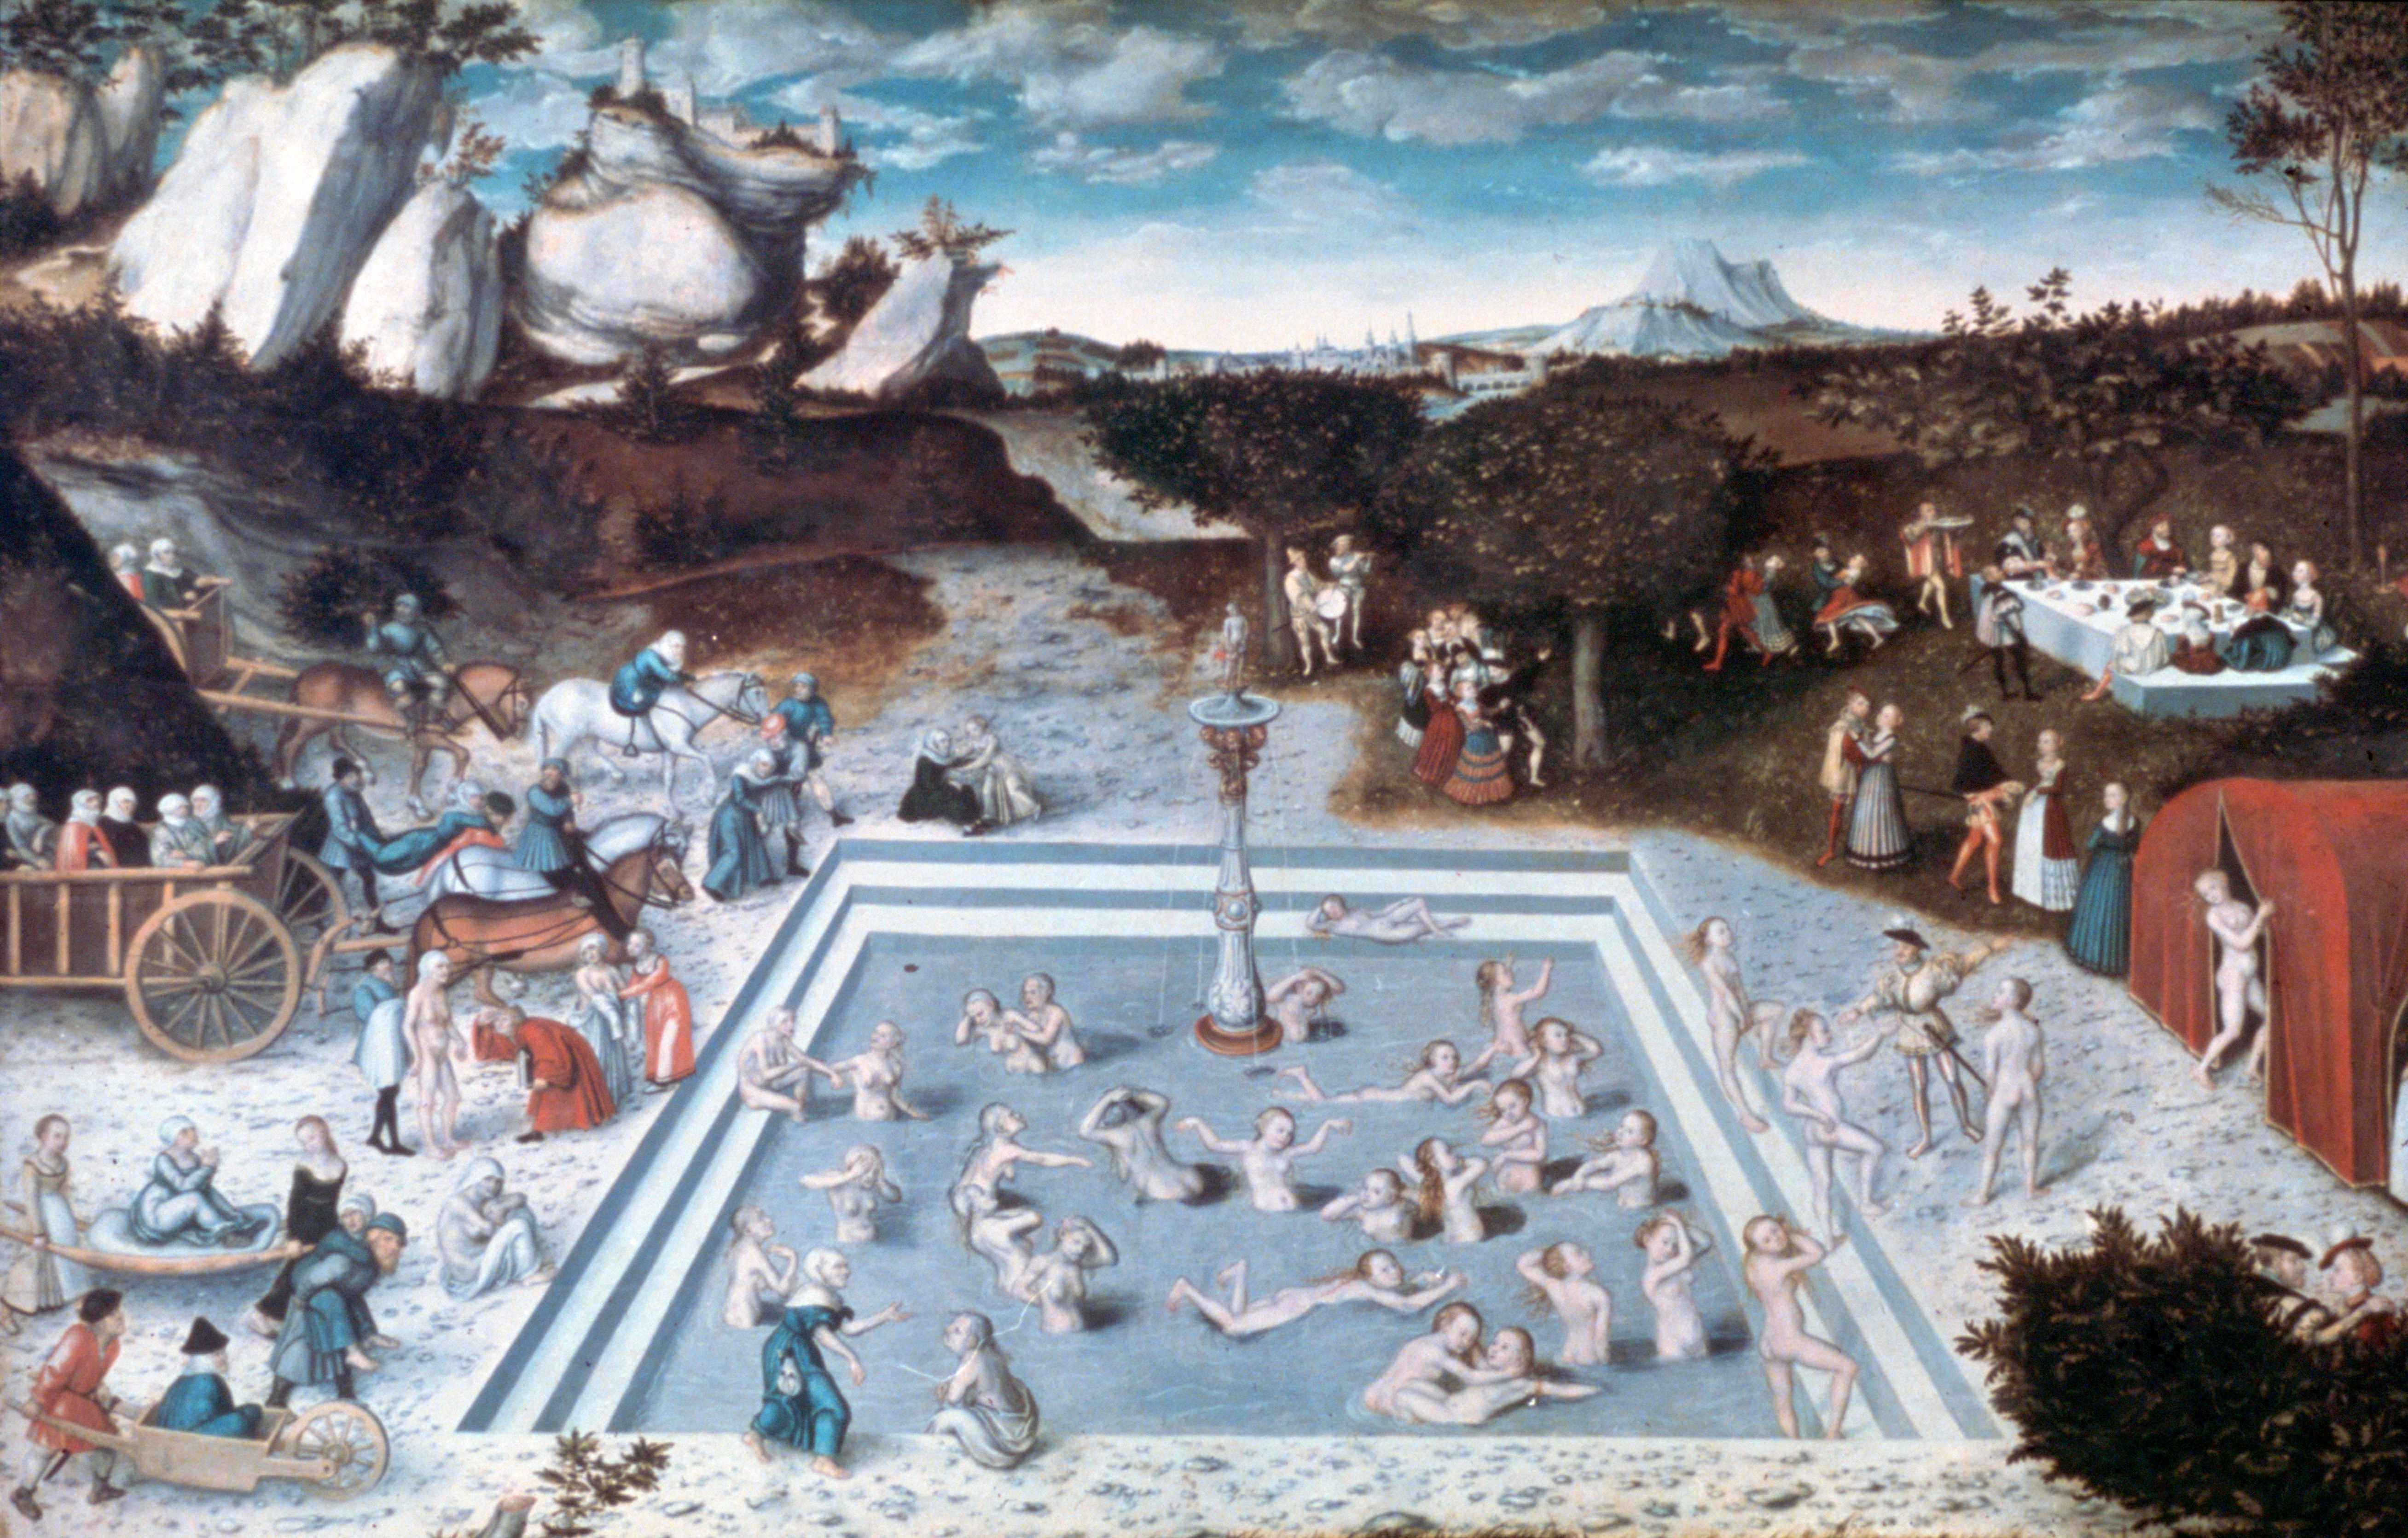 'The Fountain of Youth', 1546. Artist: Lucas Cranach the Elder